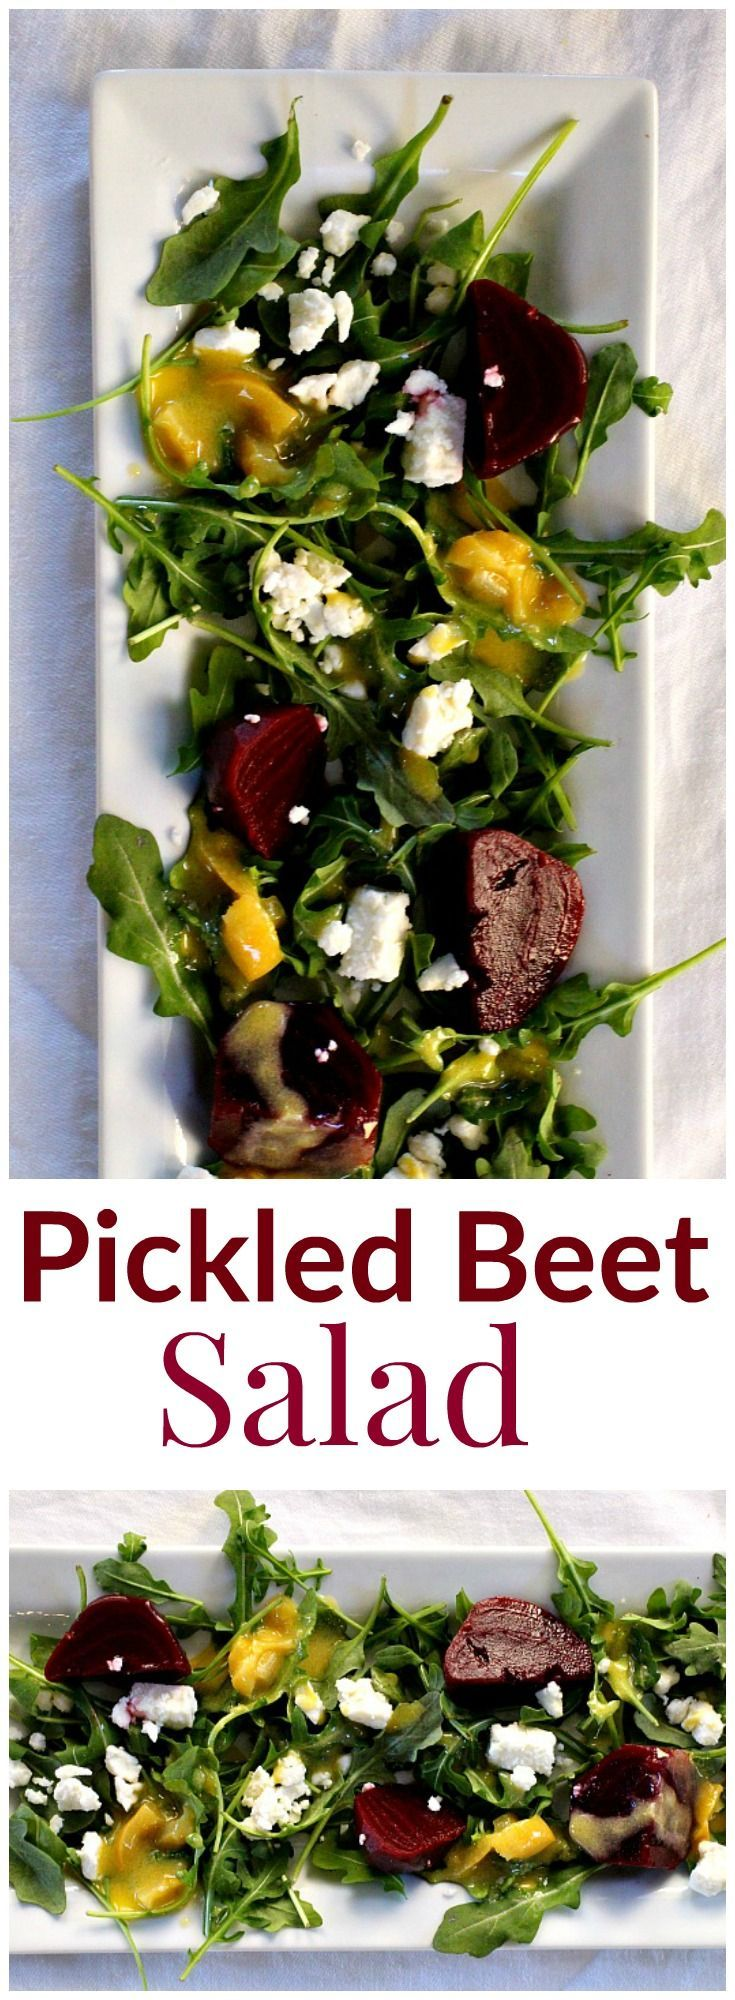 Easy Healthy Pickled Beet Salad Recipe. With arugula, feta and a creamy Dijon dressing, it'a a perfect combination of flavors. A great beet salad idea. via @lannisam